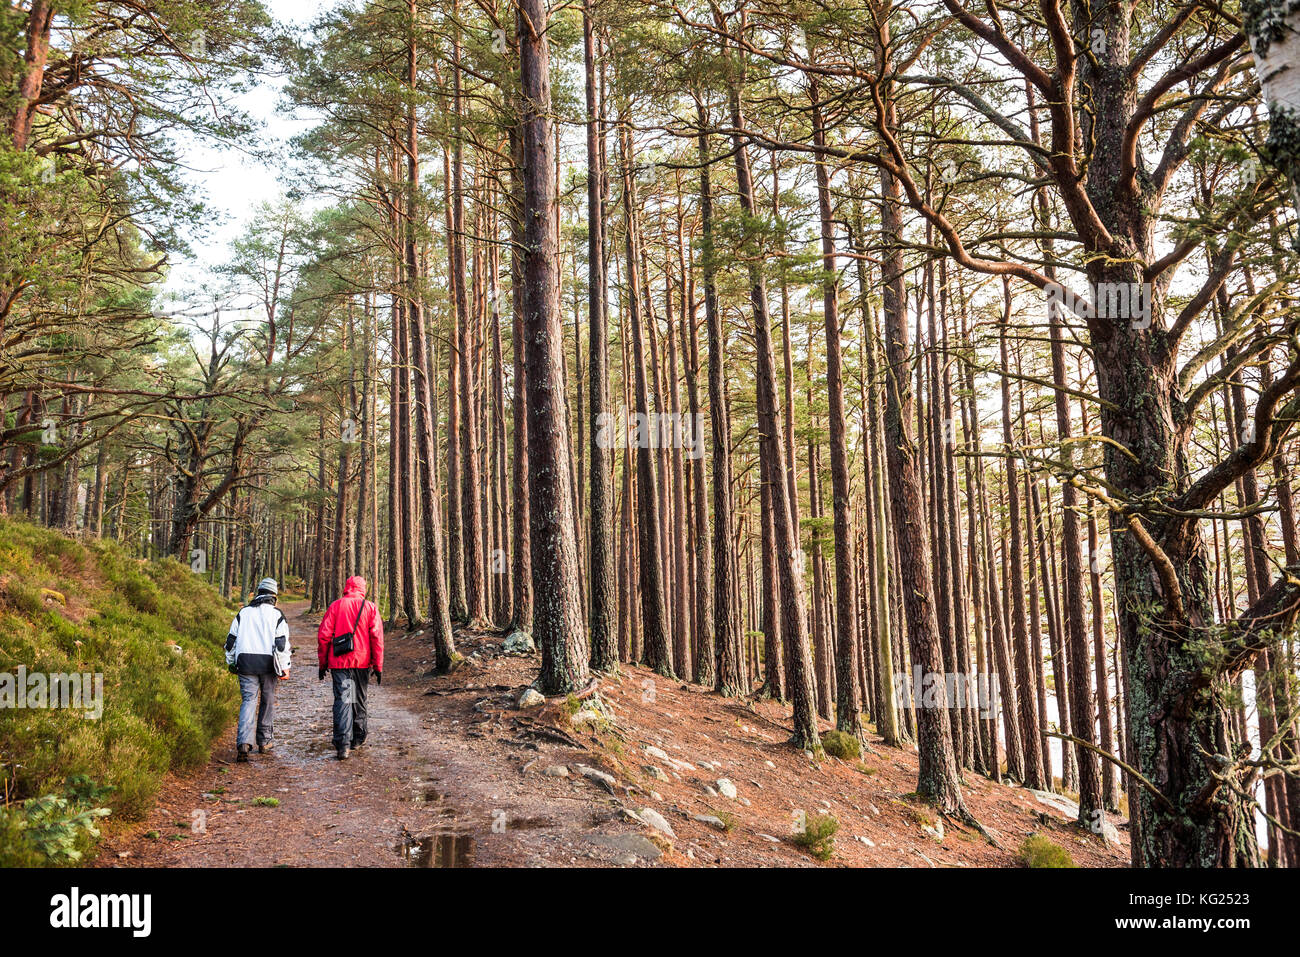 Hiking in Rothiemurchus Forest at Loch an Eilein, Aviemore, Cairngorms National Park, Scotland, United Kingdom, - Stock Image